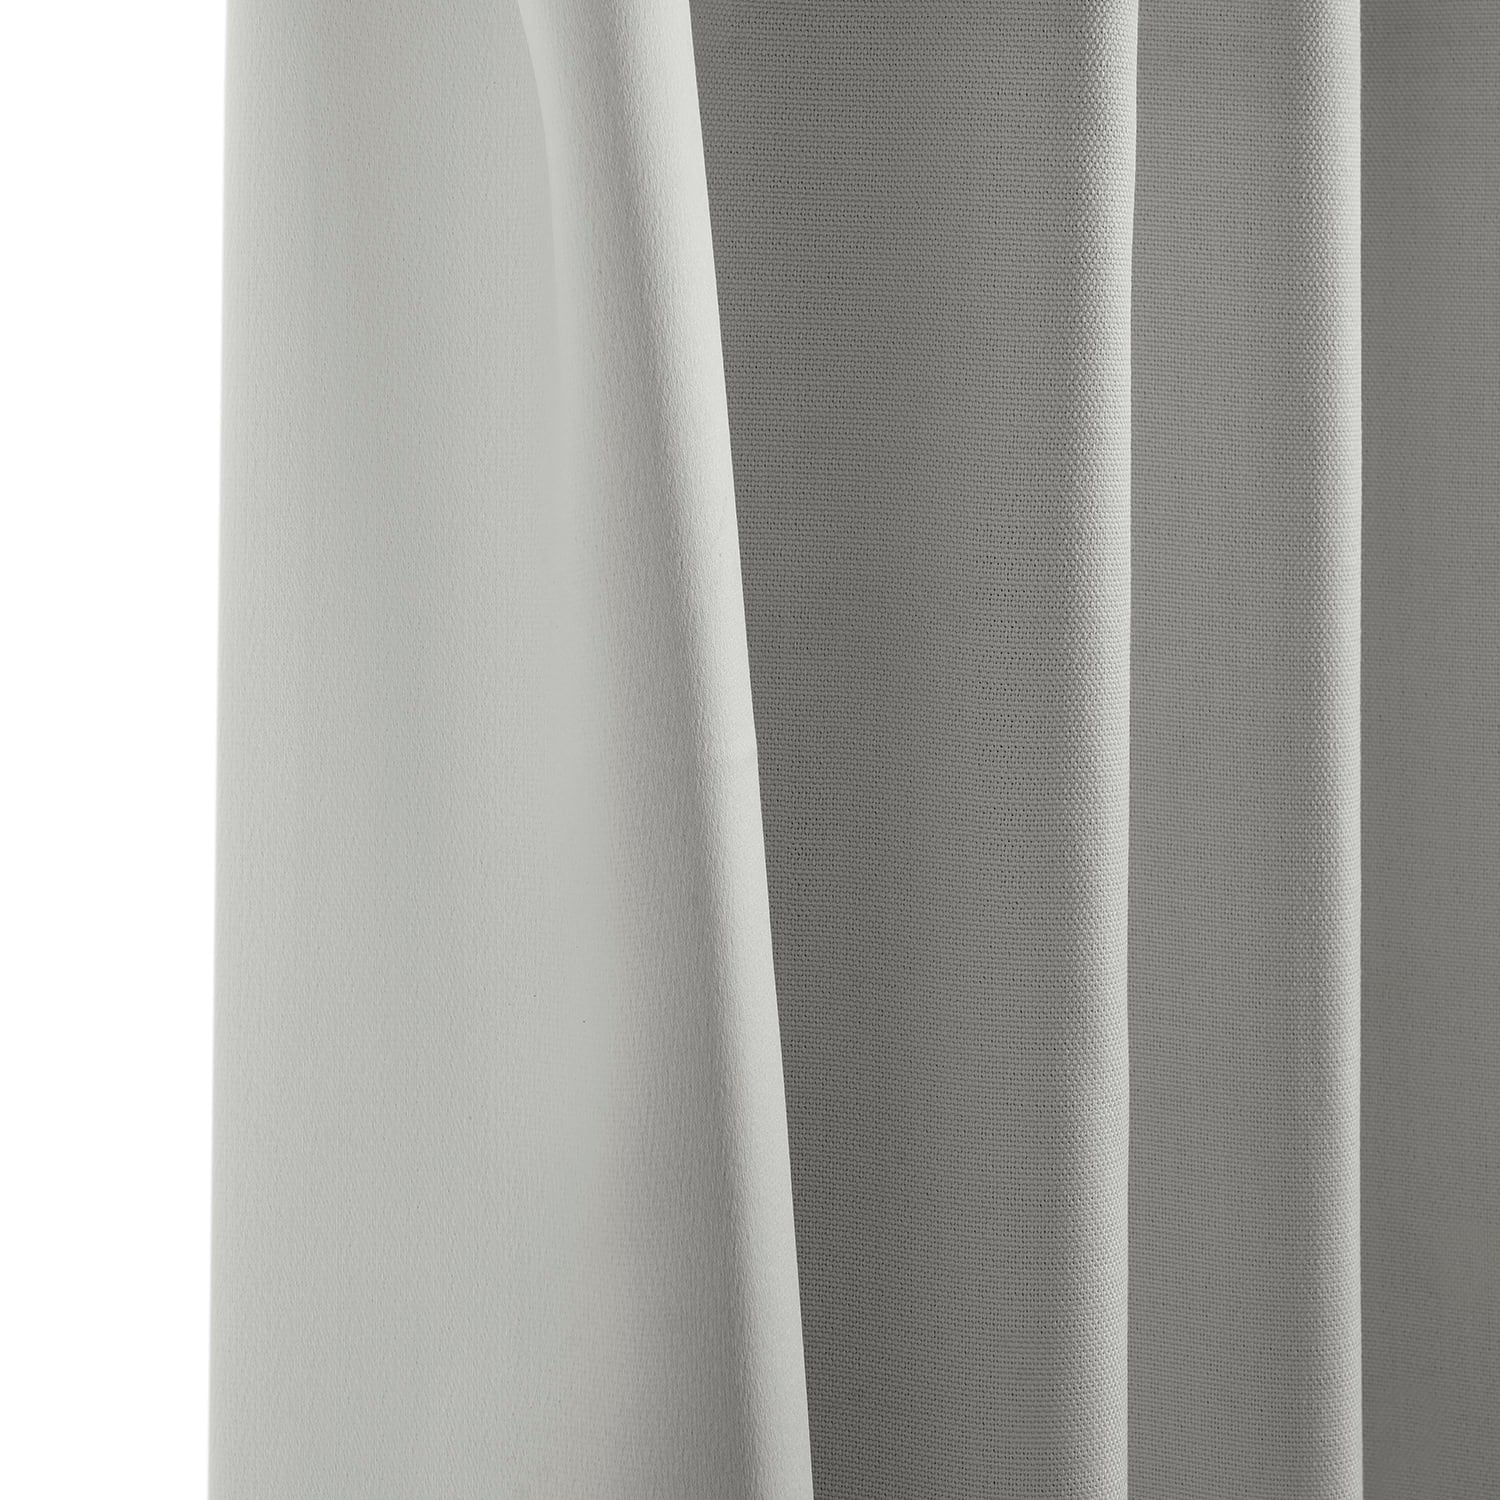 Oyster Faux Linen Blackout Room Darkening Curtain